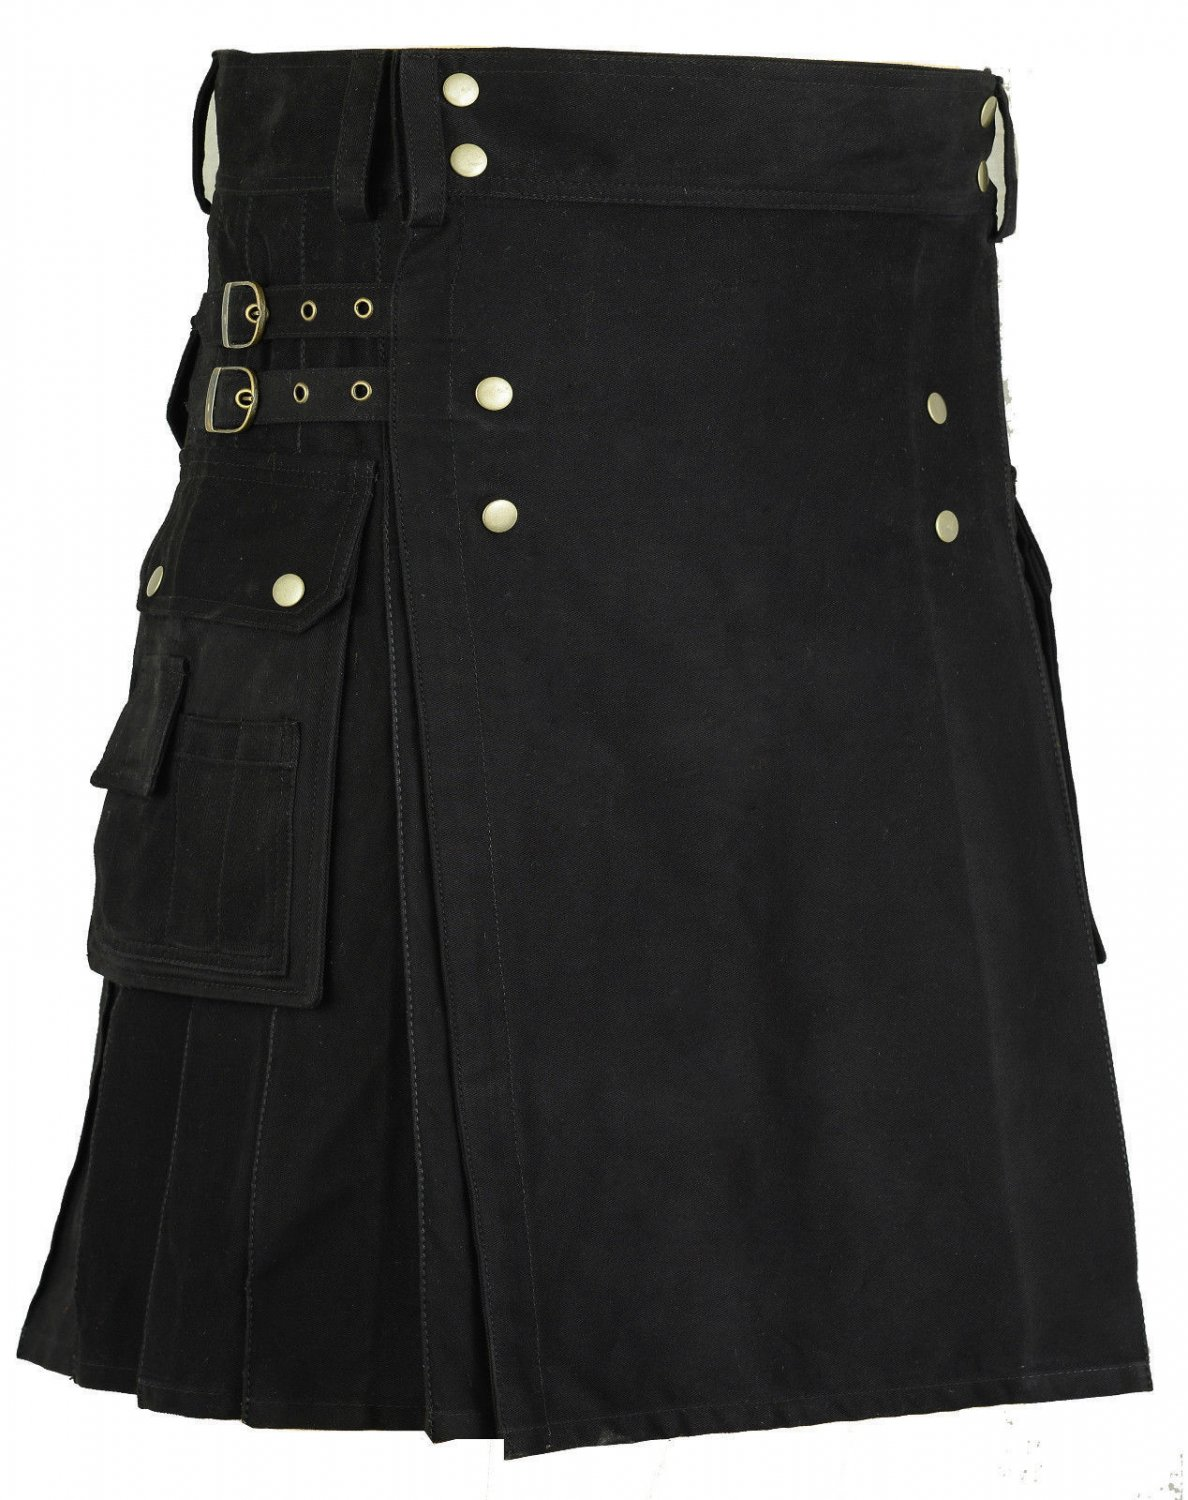 Gothic Black Cotton Outdoor Kilt for Men 34 Size Utility Kilt with Brass Material